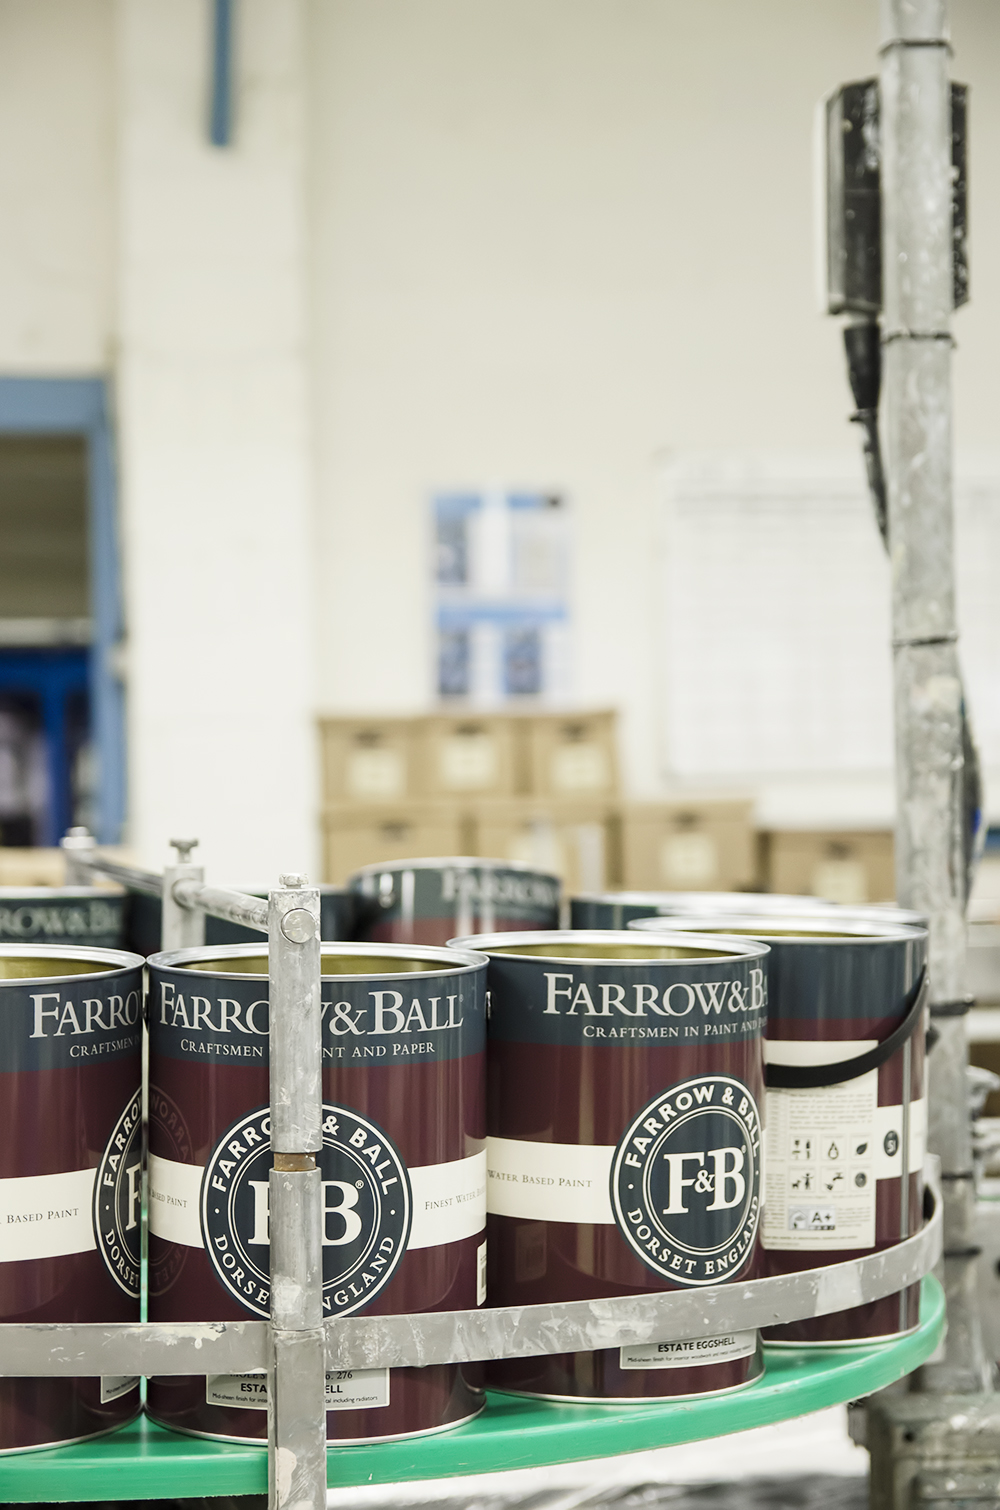 Behind the scenes at Farrow & Ball